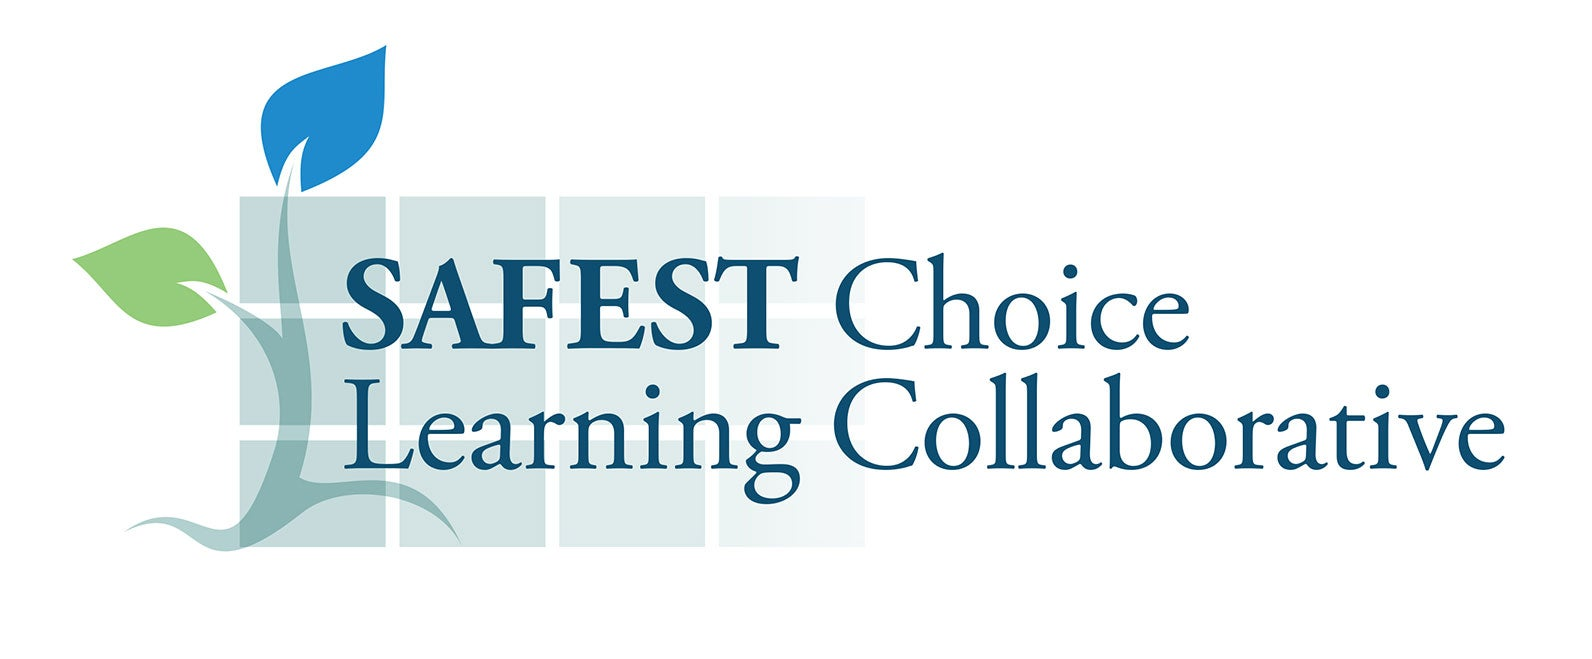 Safest Choice Learning Collaborative logo with Safest Choice Learning Collaborative in dark blue beside a branch with one blue and one green leaf, over fading blue rectangles